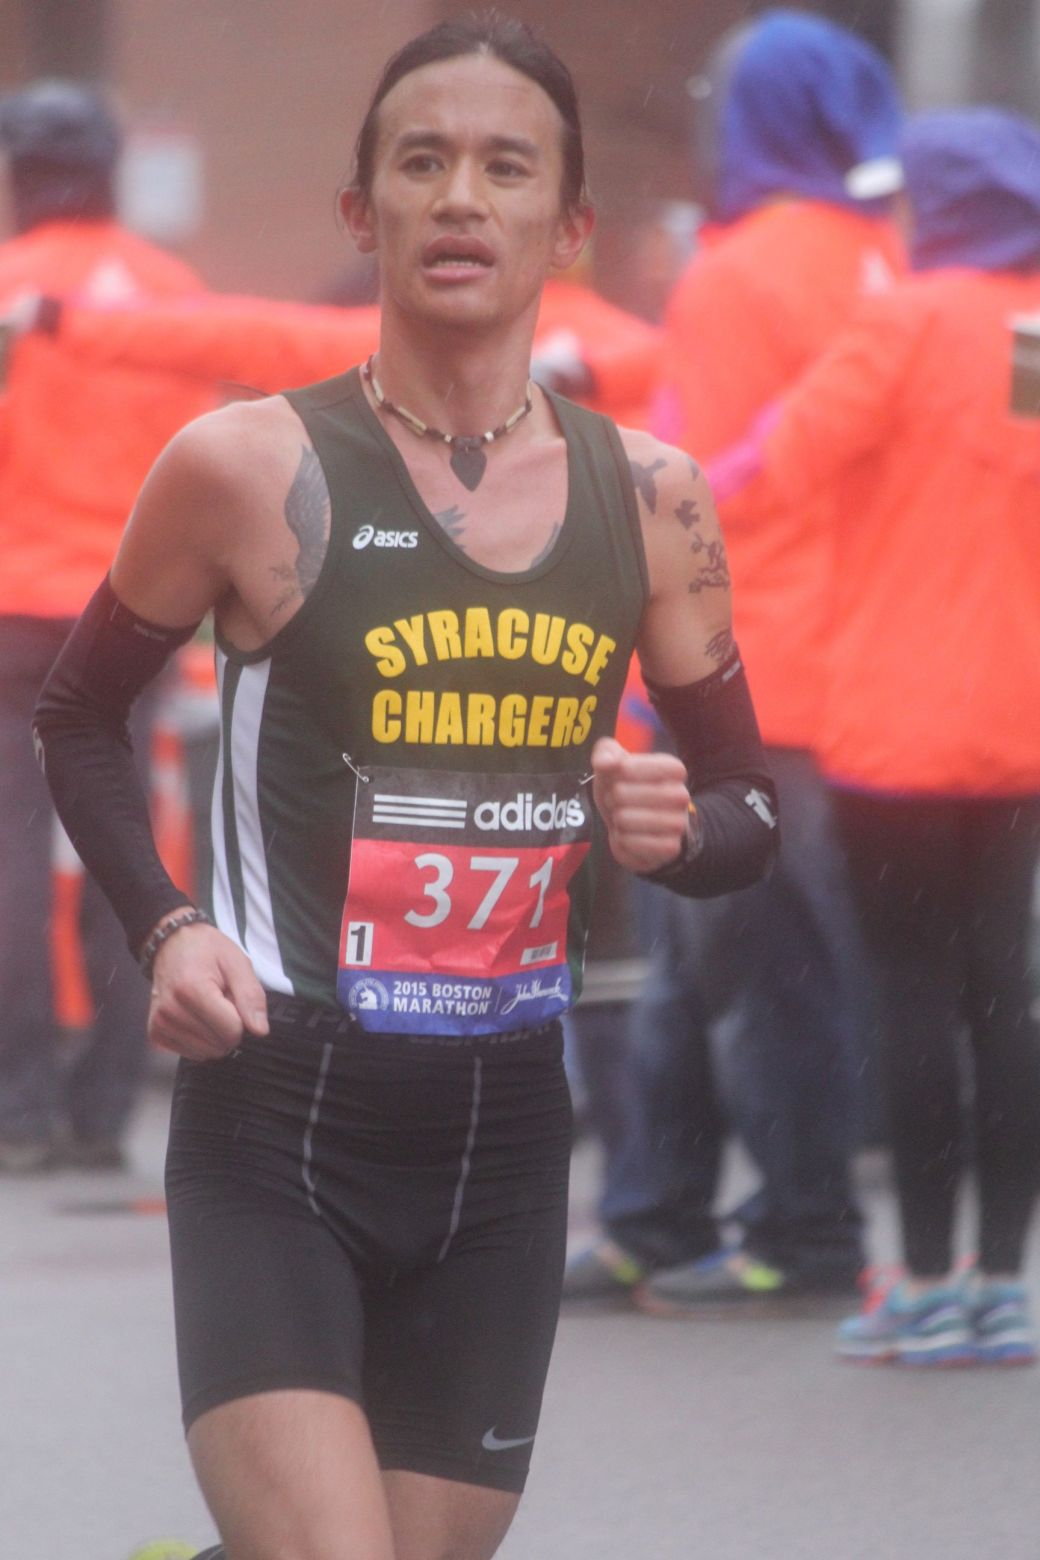 boston marathon april 20 2015 racer number 371